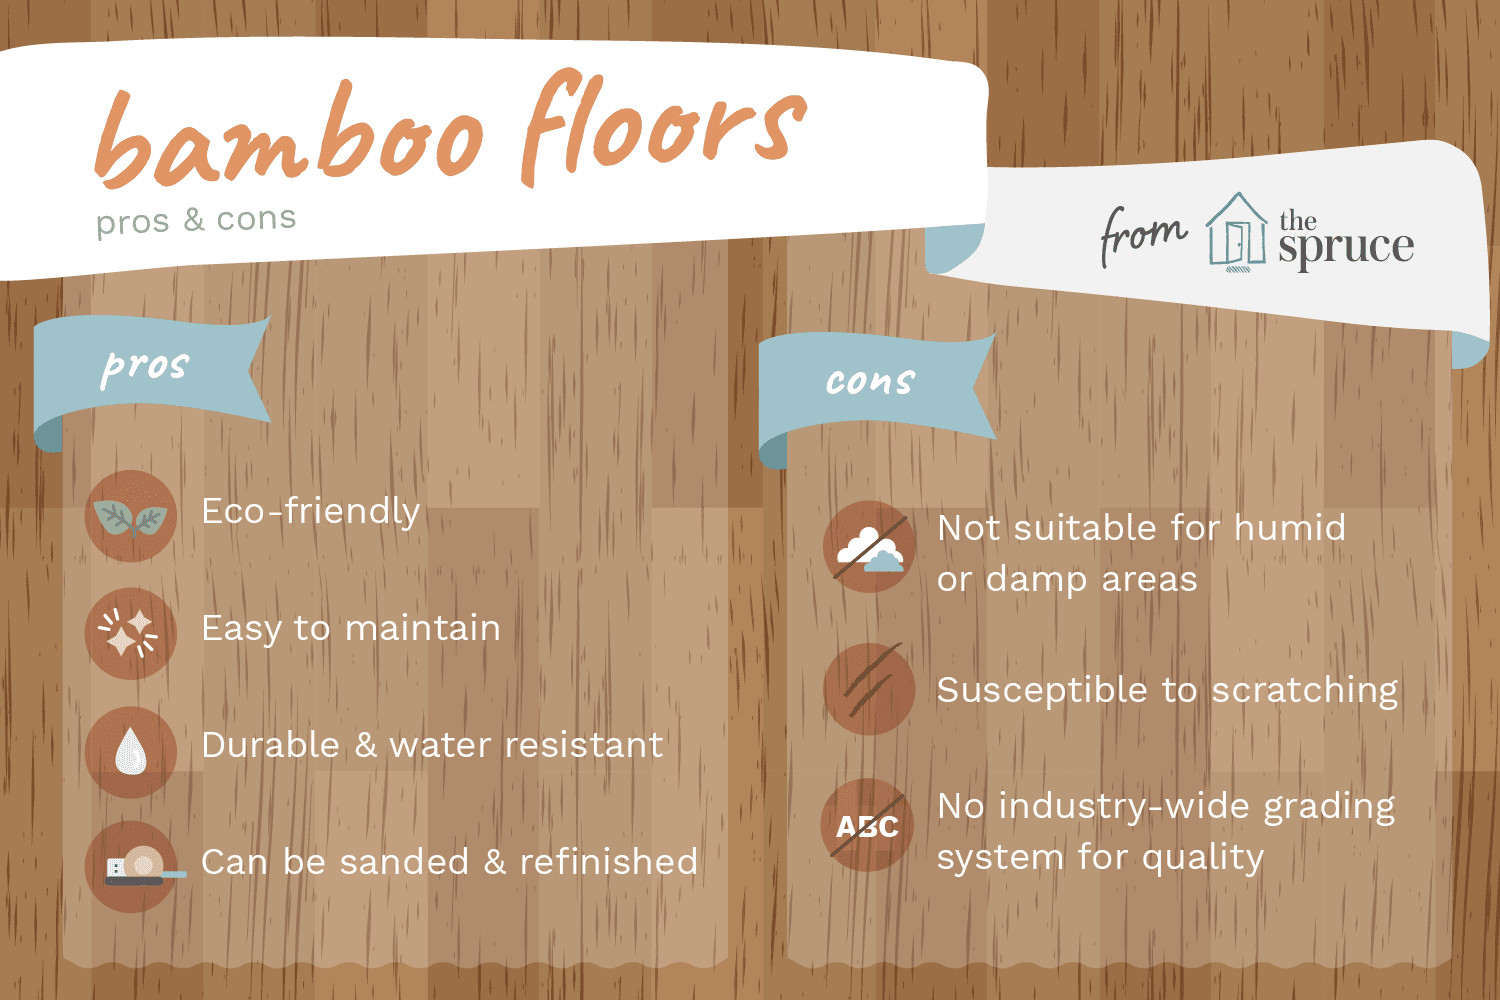 cost of bamboo flooring vs hardwood of the advantages and disadvantages of bamboo flooring with benefits and drawbacks of bamboo floors 1314694 v3 5b102fccff1b780036c0a4fa